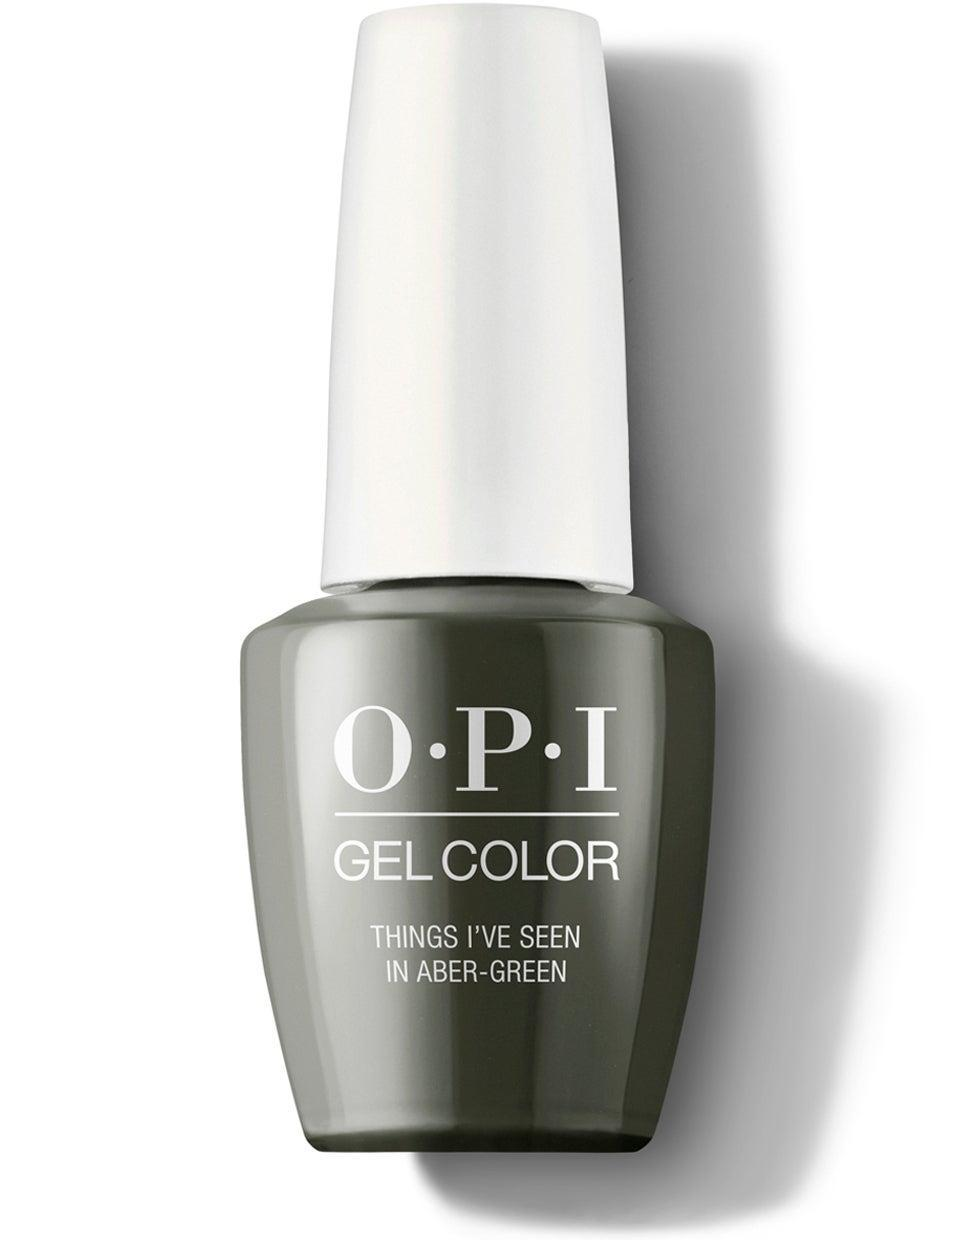 "<h3>Olive Green</h3><br>Whether you call it army or olive, earthy <a href=""https://www.refinery29.com/en-us/green-nail-polish"" rel=""nofollow noopener"" target=""_blank"" data-ylk=""slk:shades of green"" class=""link rapid-noclick-resp"">shades of green</a> are taking over the trend reports this fall, according to editorial nail artist <a href=""https://www.instagram.com/betina_goldstein/"" rel=""nofollow noopener"" target=""_blank"" data-ylk=""slk:Betina Goldstein"" class=""link rapid-noclick-resp"">Betina Goldstein</a>. For toes, we're especially into this deep green from <a href=""https://www.refinery29.com/en-us/2019/09/241891/opi-fall-nail-polish-colors-2019"" rel=""nofollow noopener"" target=""_blank"" data-ylk=""slk:OPI's Scotland collection"" class=""link rapid-noclick-resp"">OPI's Scotland collection</a>. <br><br><strong>OPI Infinite Shine</strong> OPI Nail Polish in Things I've Seen in Aber-green, $, available at <a href=""https://go.skimresources.com/?id=30283X879131&url=https%3A%2F%2Fwww.ulta.com%2Fscotland-infinite-shine-collection%3FproductId%3Dpimprod2008445%26sku%3D2551037%26cmpid%3DPS_Non%21google%21Product_Listing_Ads%26cagpspn%3Dpla%26CATCI%3Dpla-294680686006%26CAAGID%3D18002902230%26CAWELAID%3D330000200001809145%26CATARGETID%3D330000200001332369%26cadevice%3Dc%26gclid%3DEAIaIQobChMIr--Xi_nL5AIVhv_jBx0KlAOJEAQYAiABEgIwoPD_BwE"" rel=""nofollow noopener"" target=""_blank"" data-ylk=""slk:Ulta Beauty"" class=""link rapid-noclick-resp"">Ulta Beauty</a>"